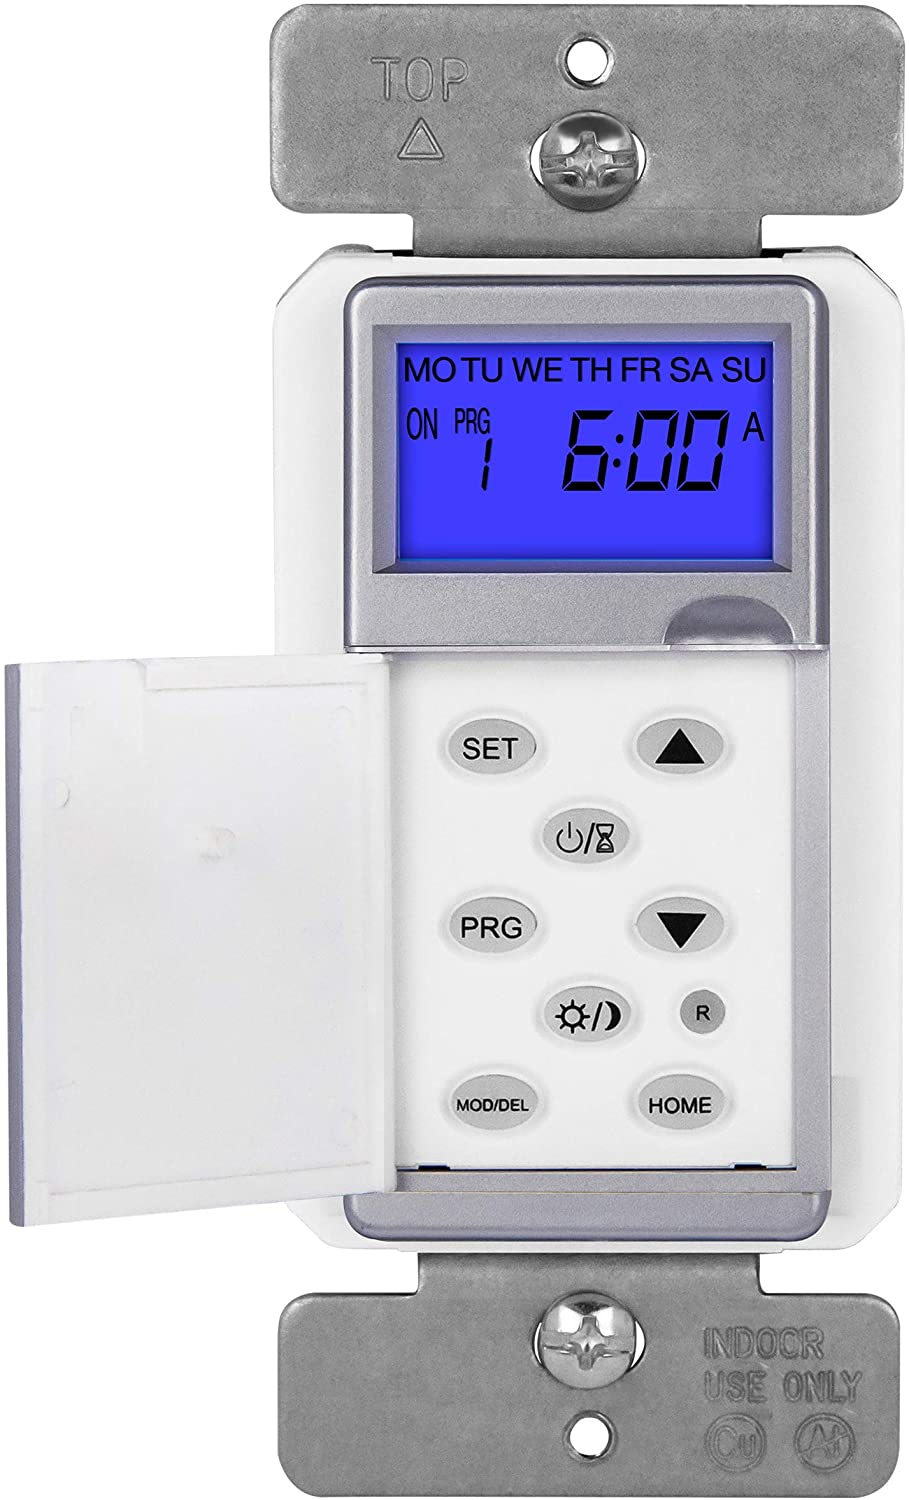 TOPGREENER TGT01-H-SV Digital Switch, Astronomic in-Wall 7-Day Programmable Sunrise Sunset, Timer with Solar Time Table, Dusk to Dawn, Neutral Wire Required, Silver